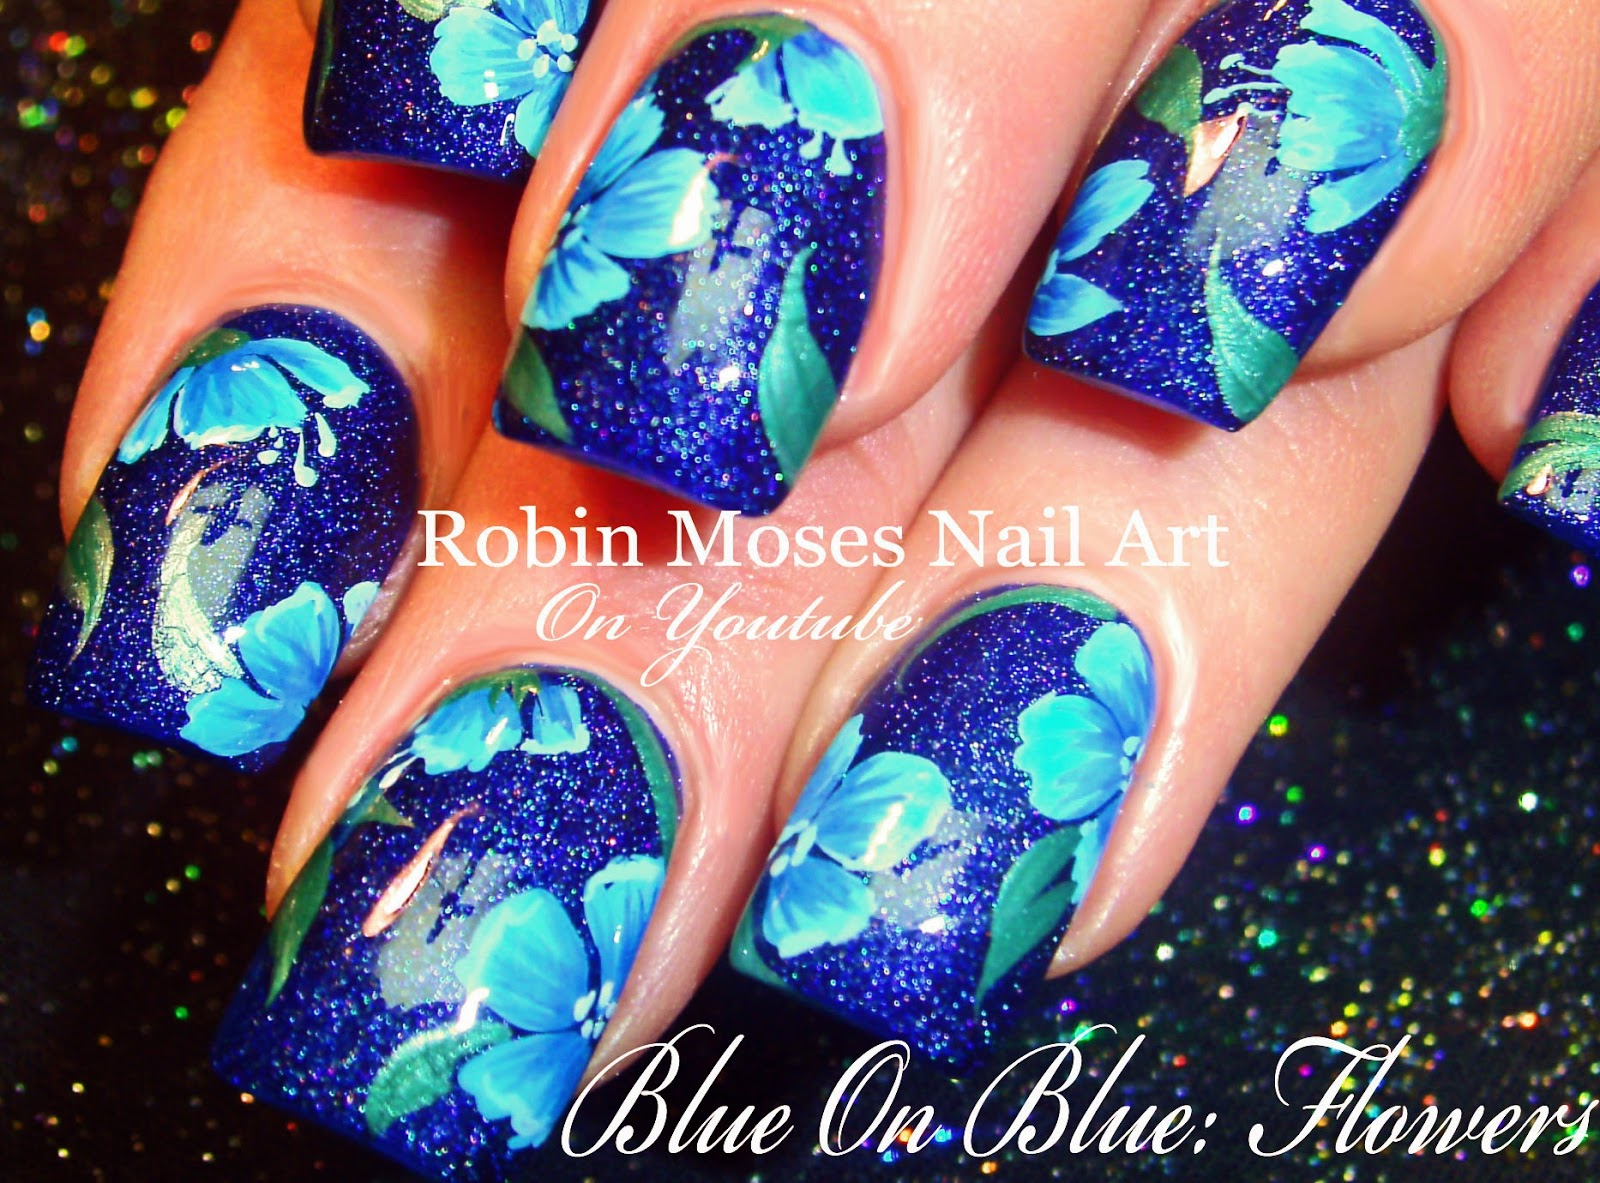 Robin moses nail art blue polish with blue flowers blue flower blue polish with blue flowers blue flower nails blue flower design blue flowers elegant blue blue clip art blue sparkles opi give me space prinsesfo Gallery